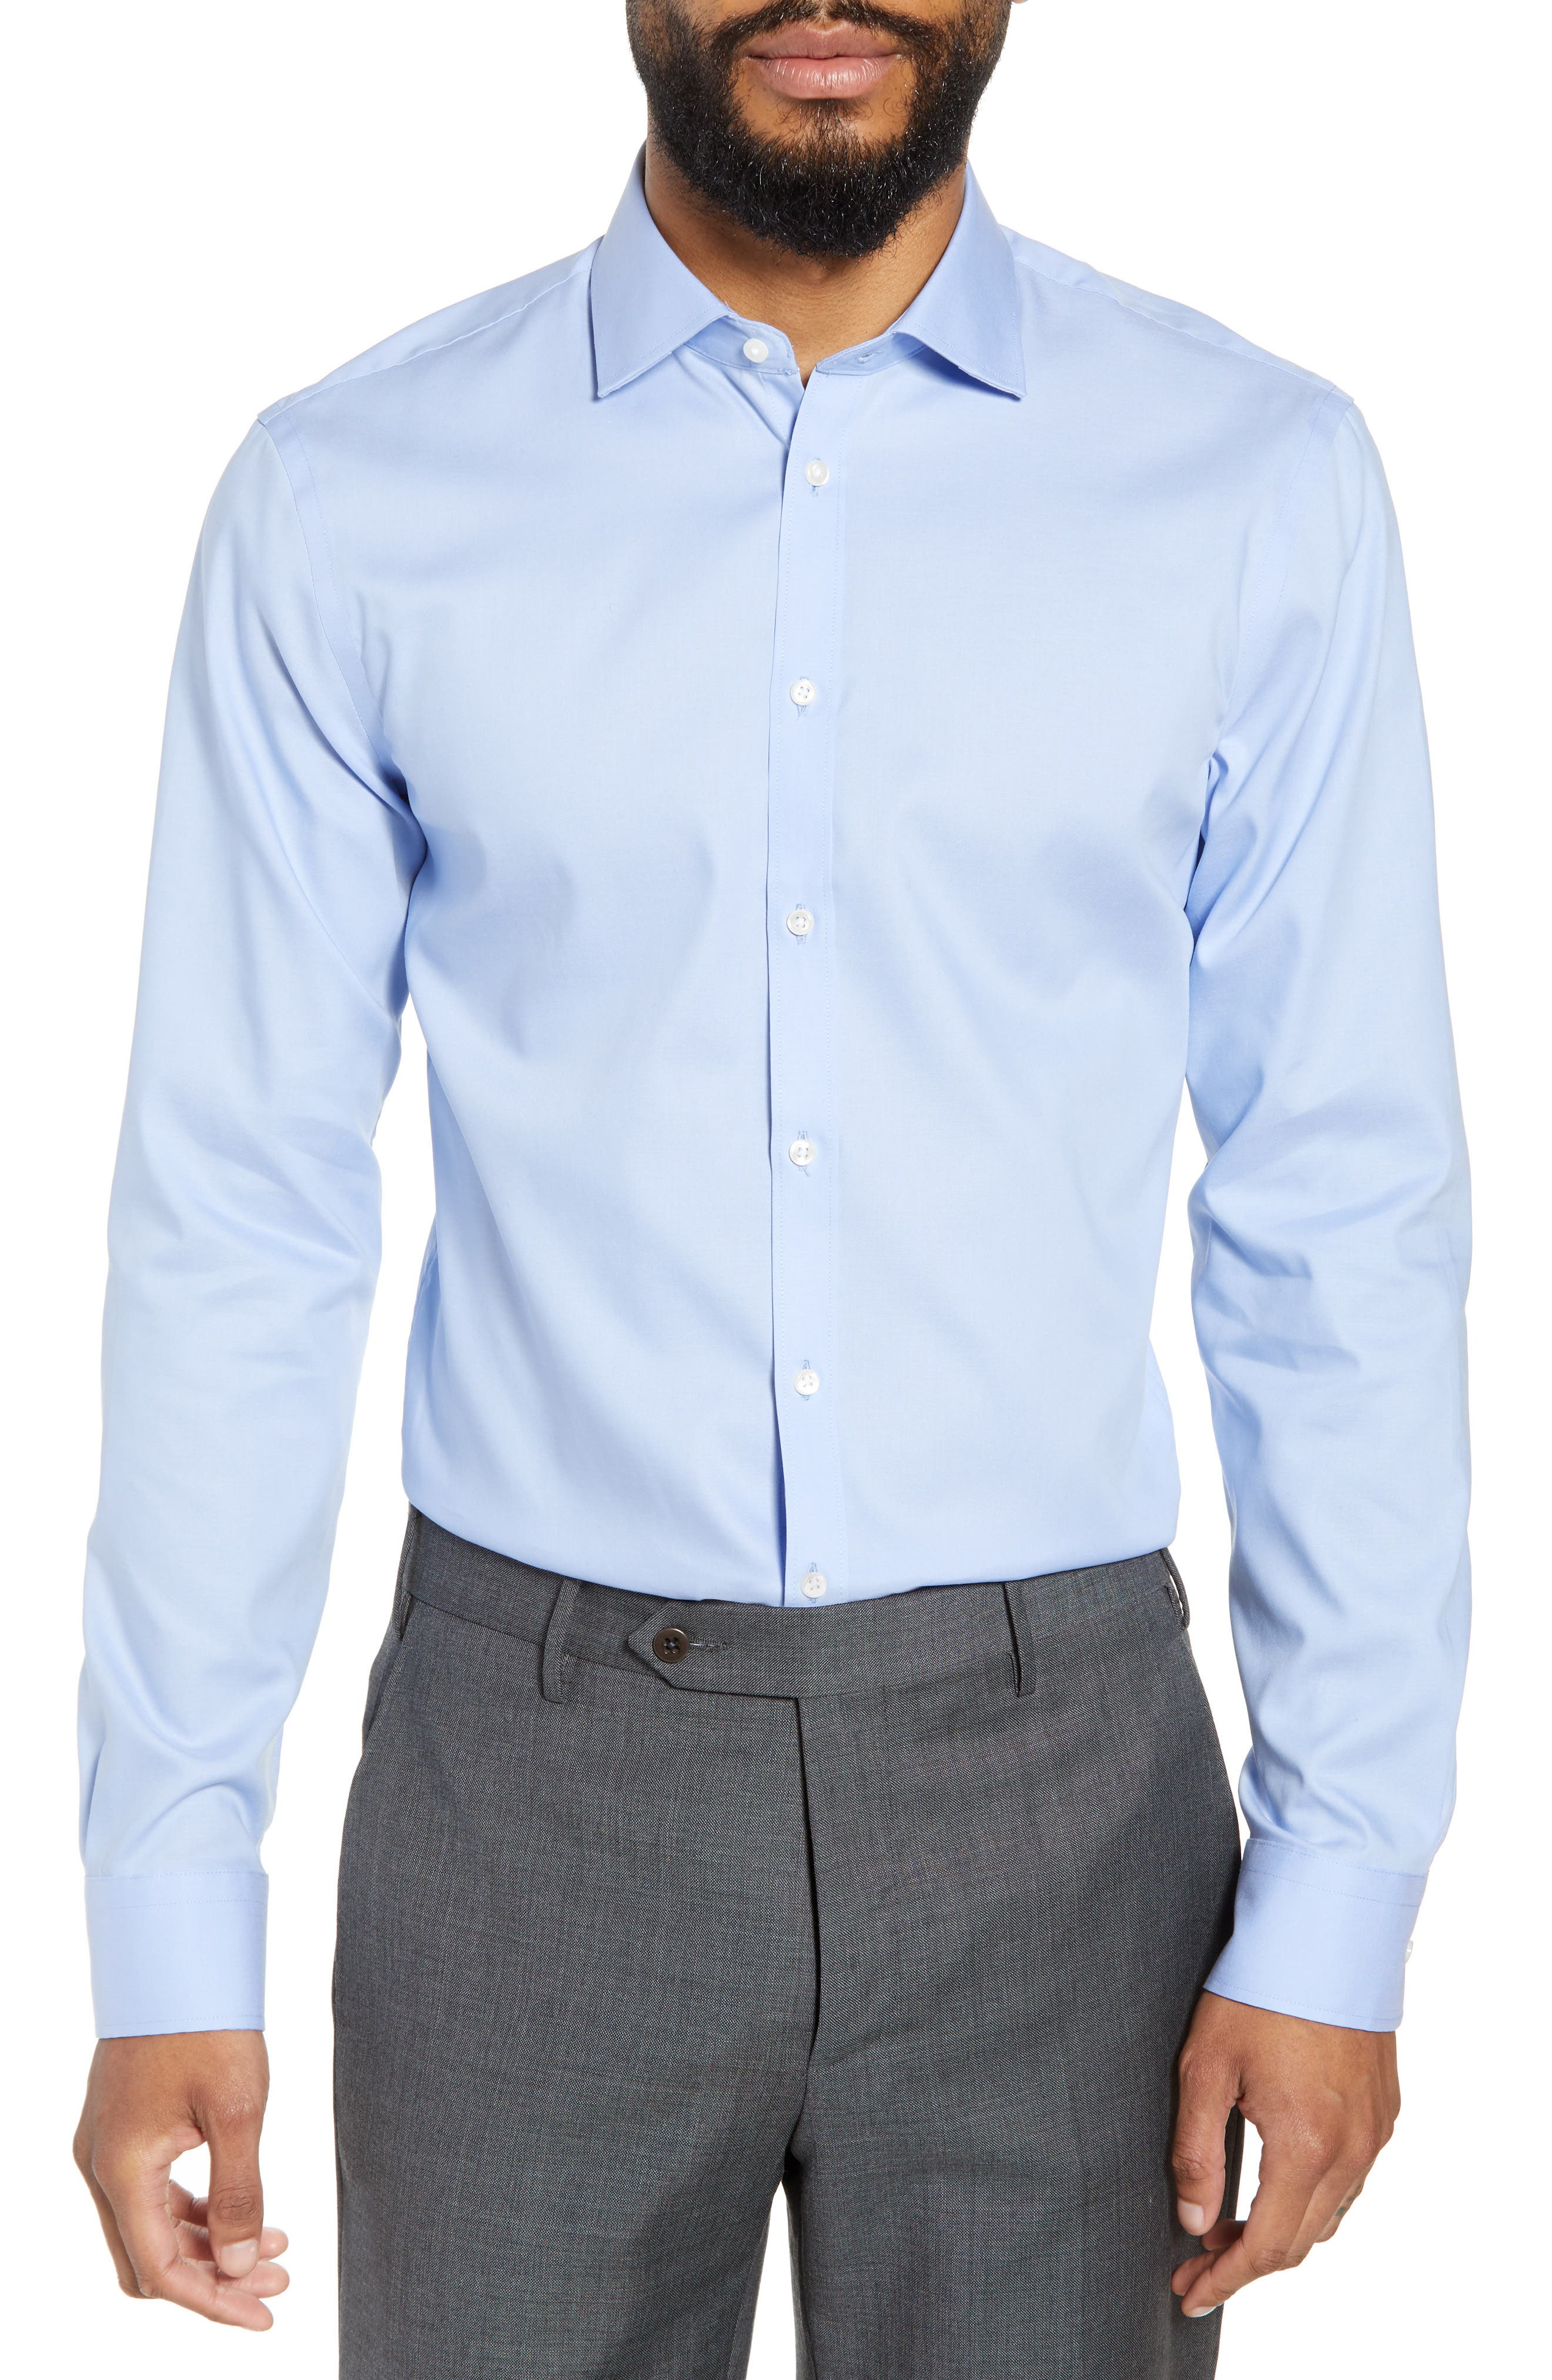 Mens Extra Slim Fit Dress Shirts Nordstrom